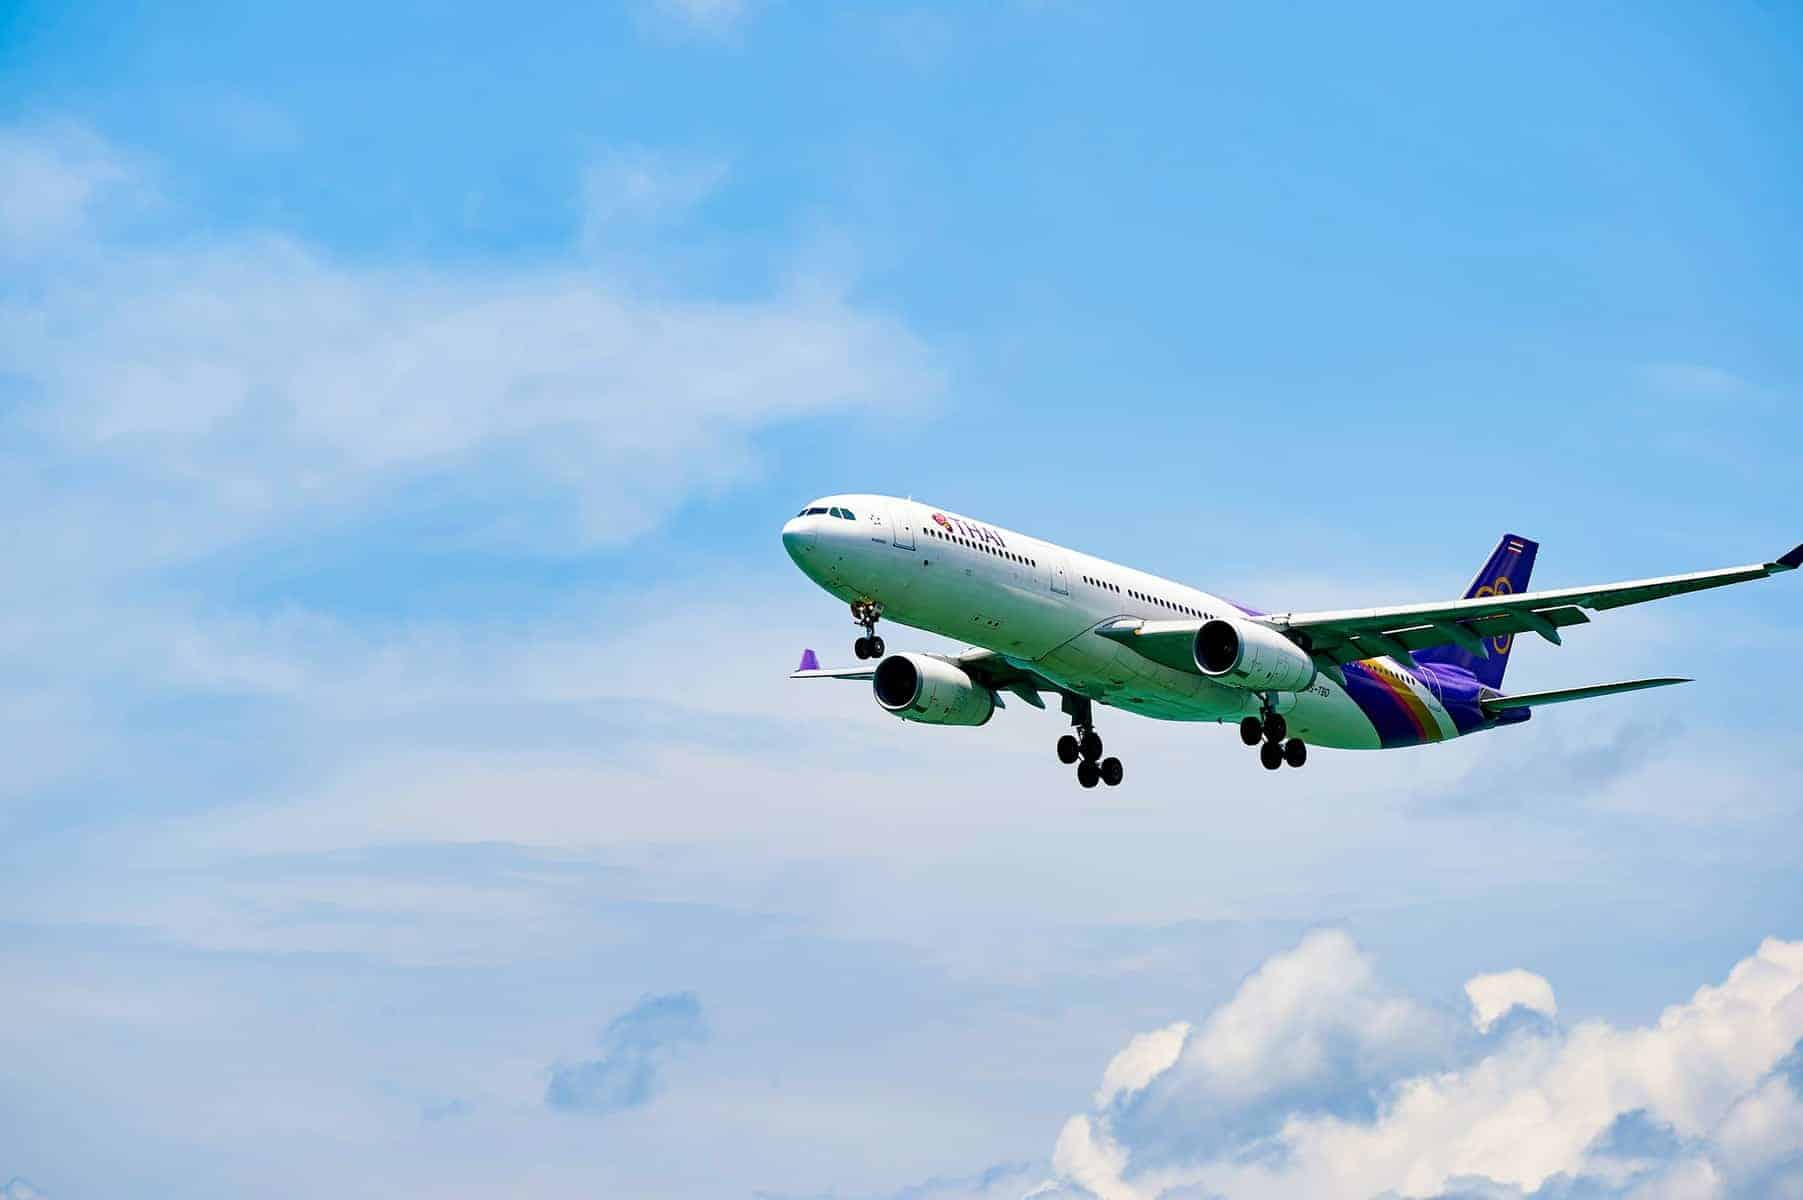 THAI aircraft landing at Hong Kong airport. Thai Airways International Public Company Limited, also trading as THAI is the flag carrier airline of Thailand